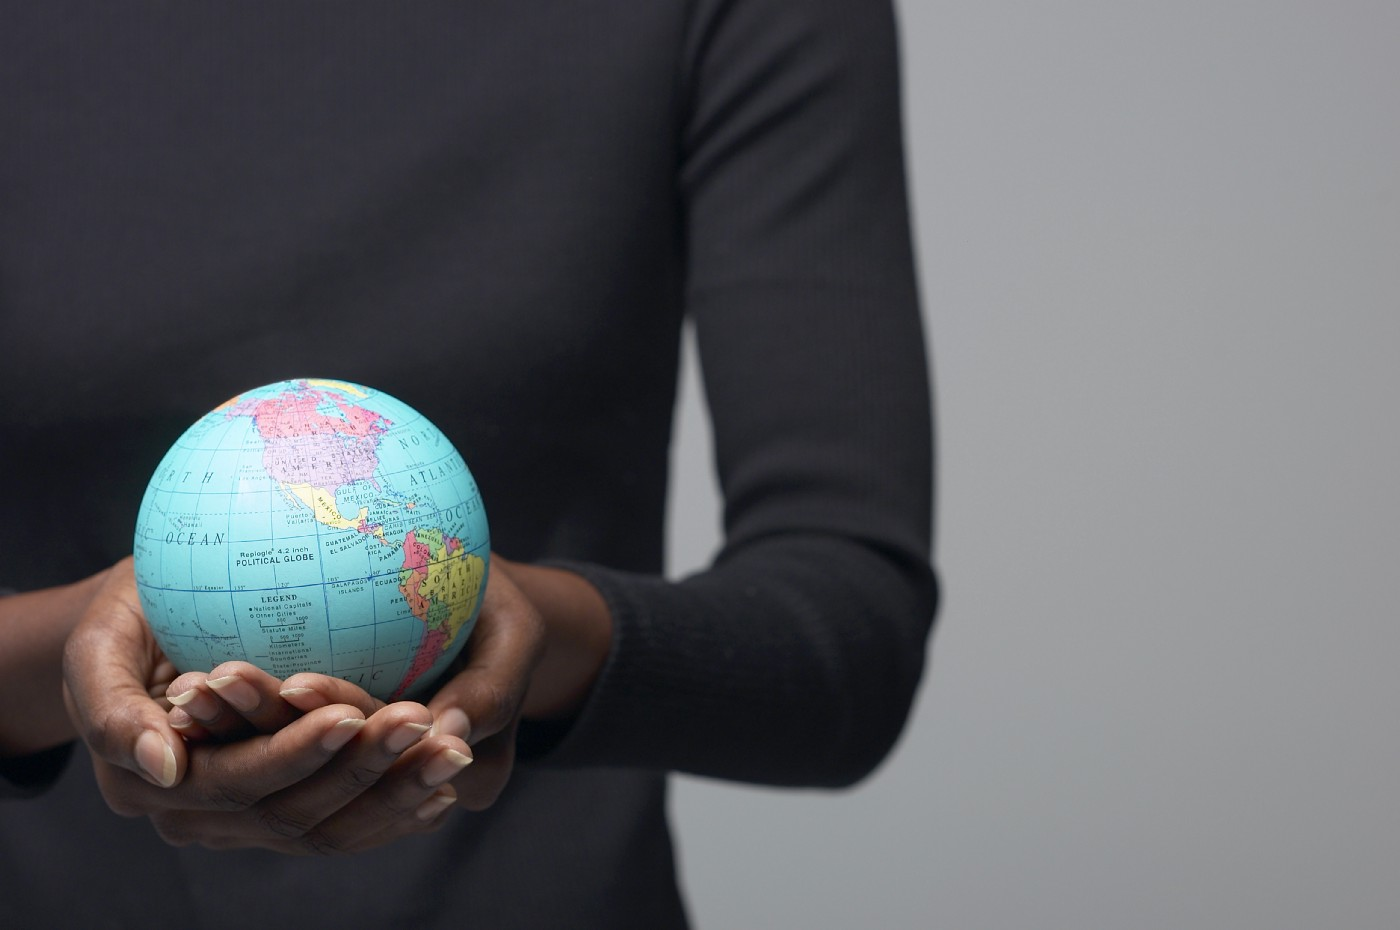 A woman holding a globe in her hands.